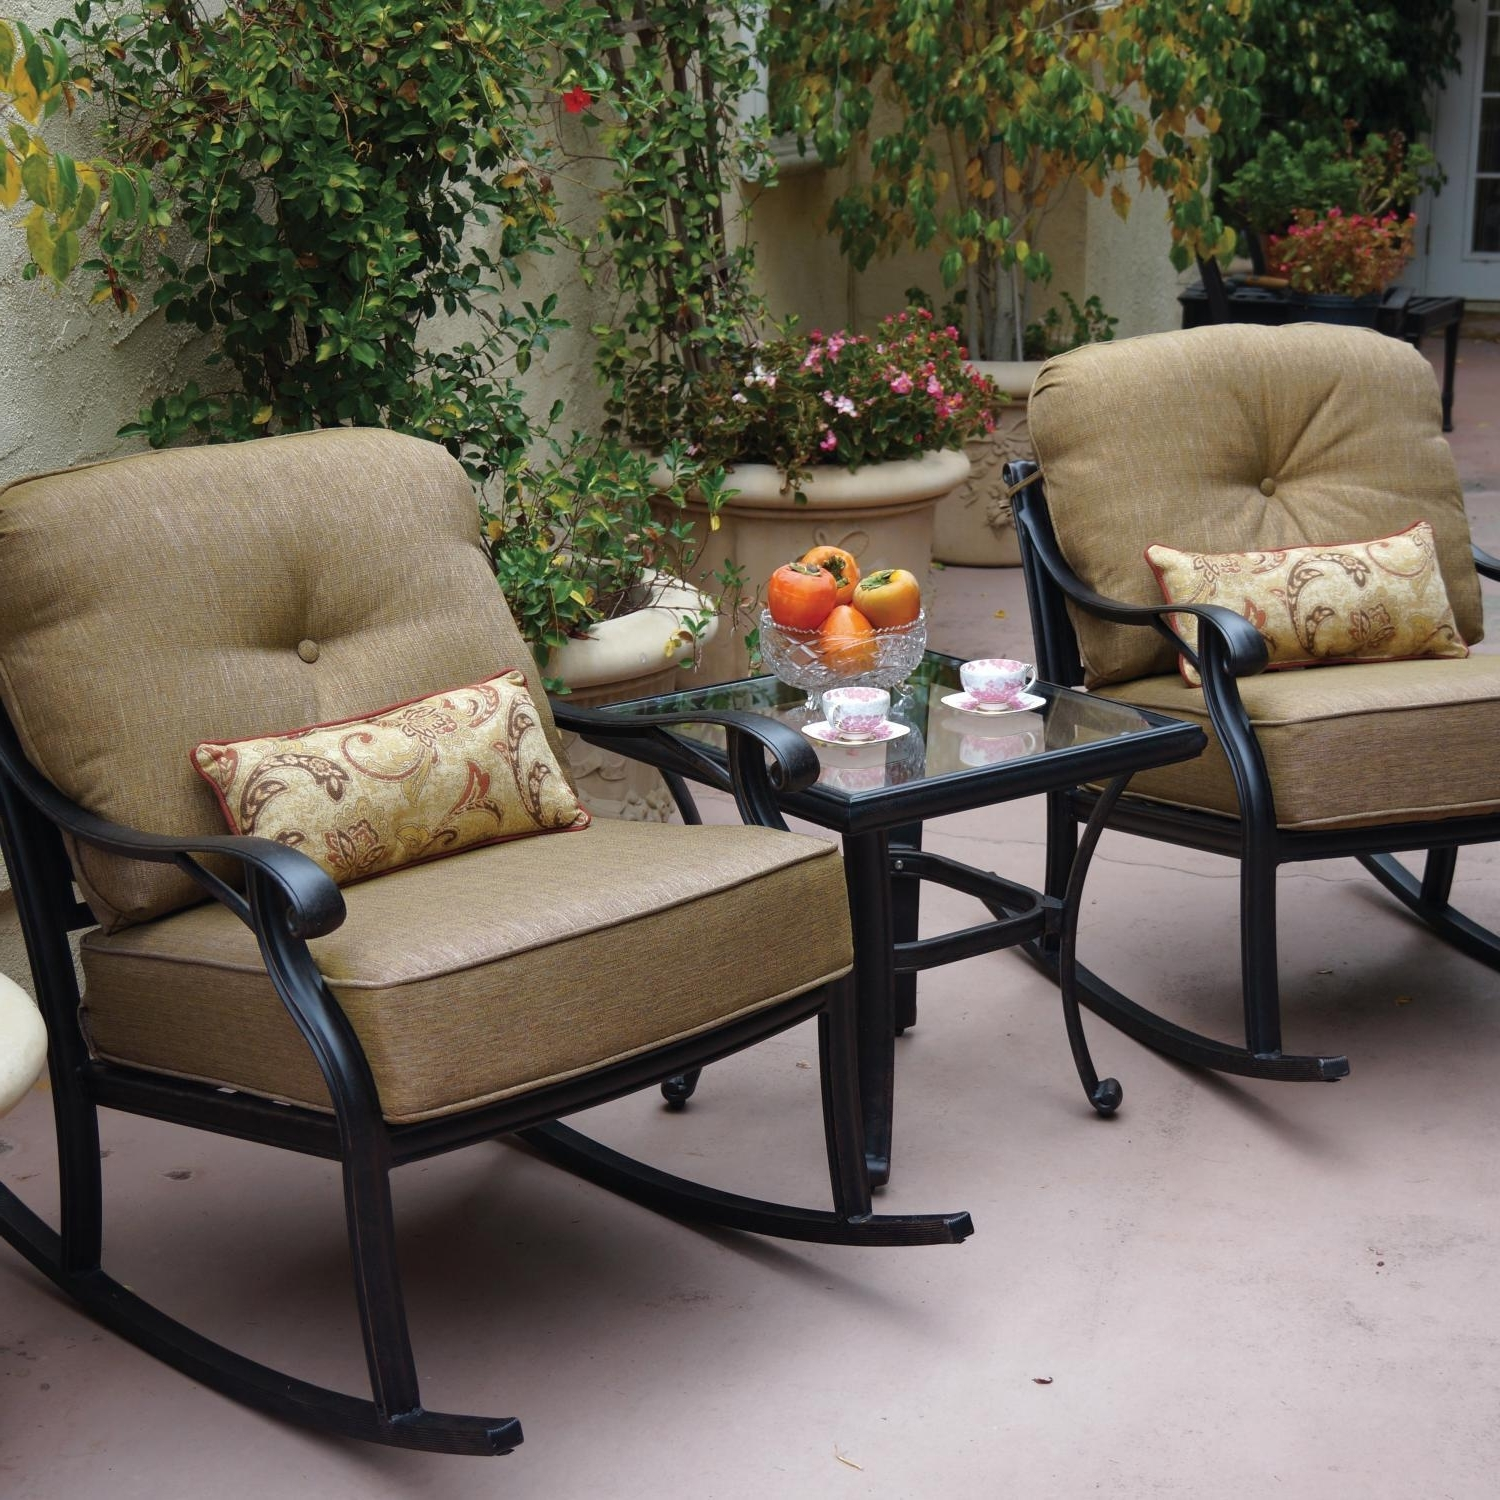 Widely Used Aluminum Patio Conversation Sets Intended For Darlee Nassau 3 Piece Cast Aluminum Patio Conversation Seating Set (View 12 of 20)